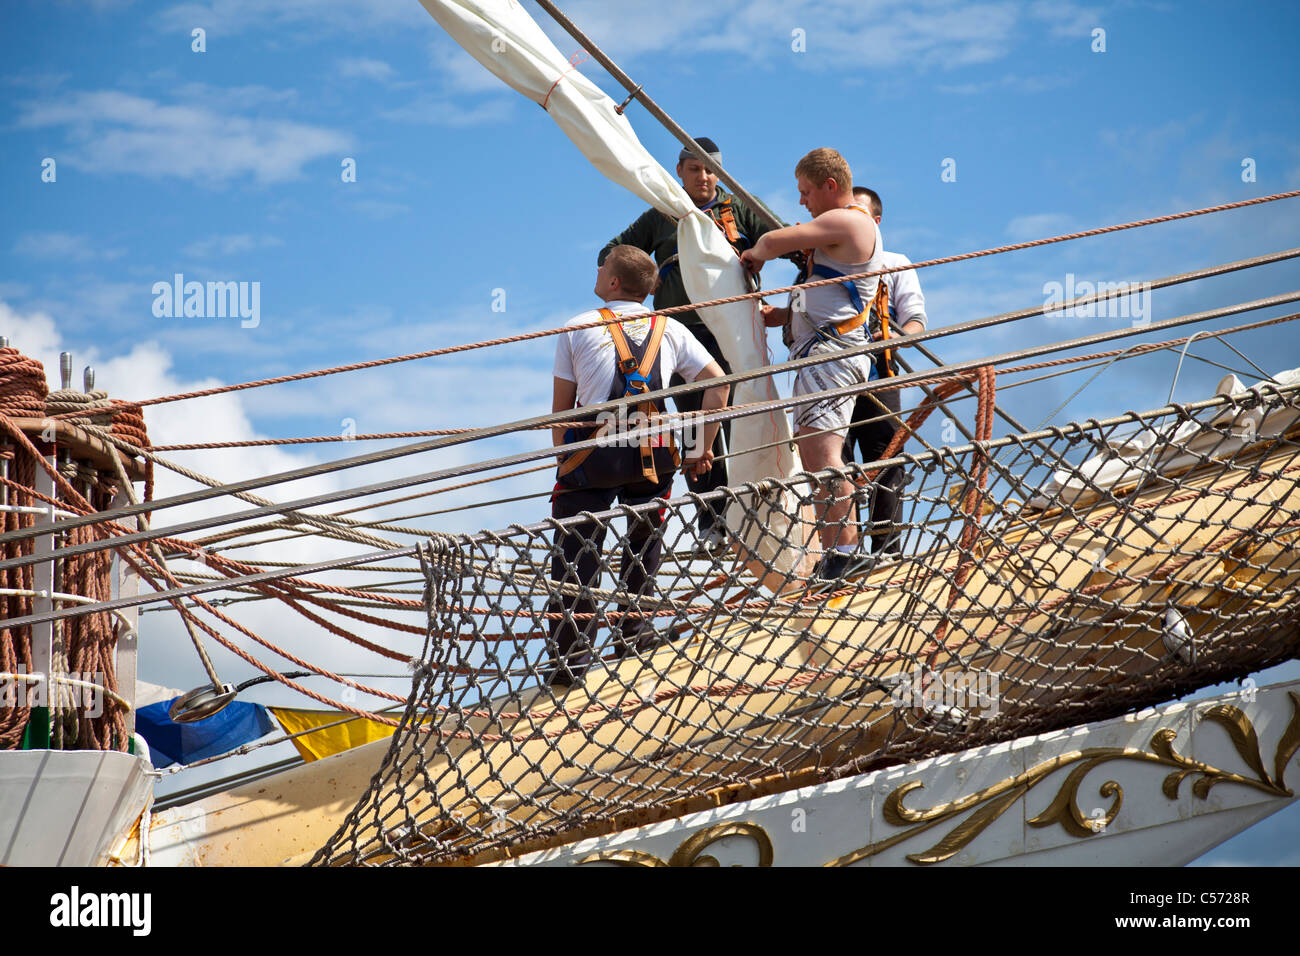 Men standing of the bowsprit of the Dar Mlodziezy, working on the rigging of a sail. Greenock, Scotland, UK - Stock Image